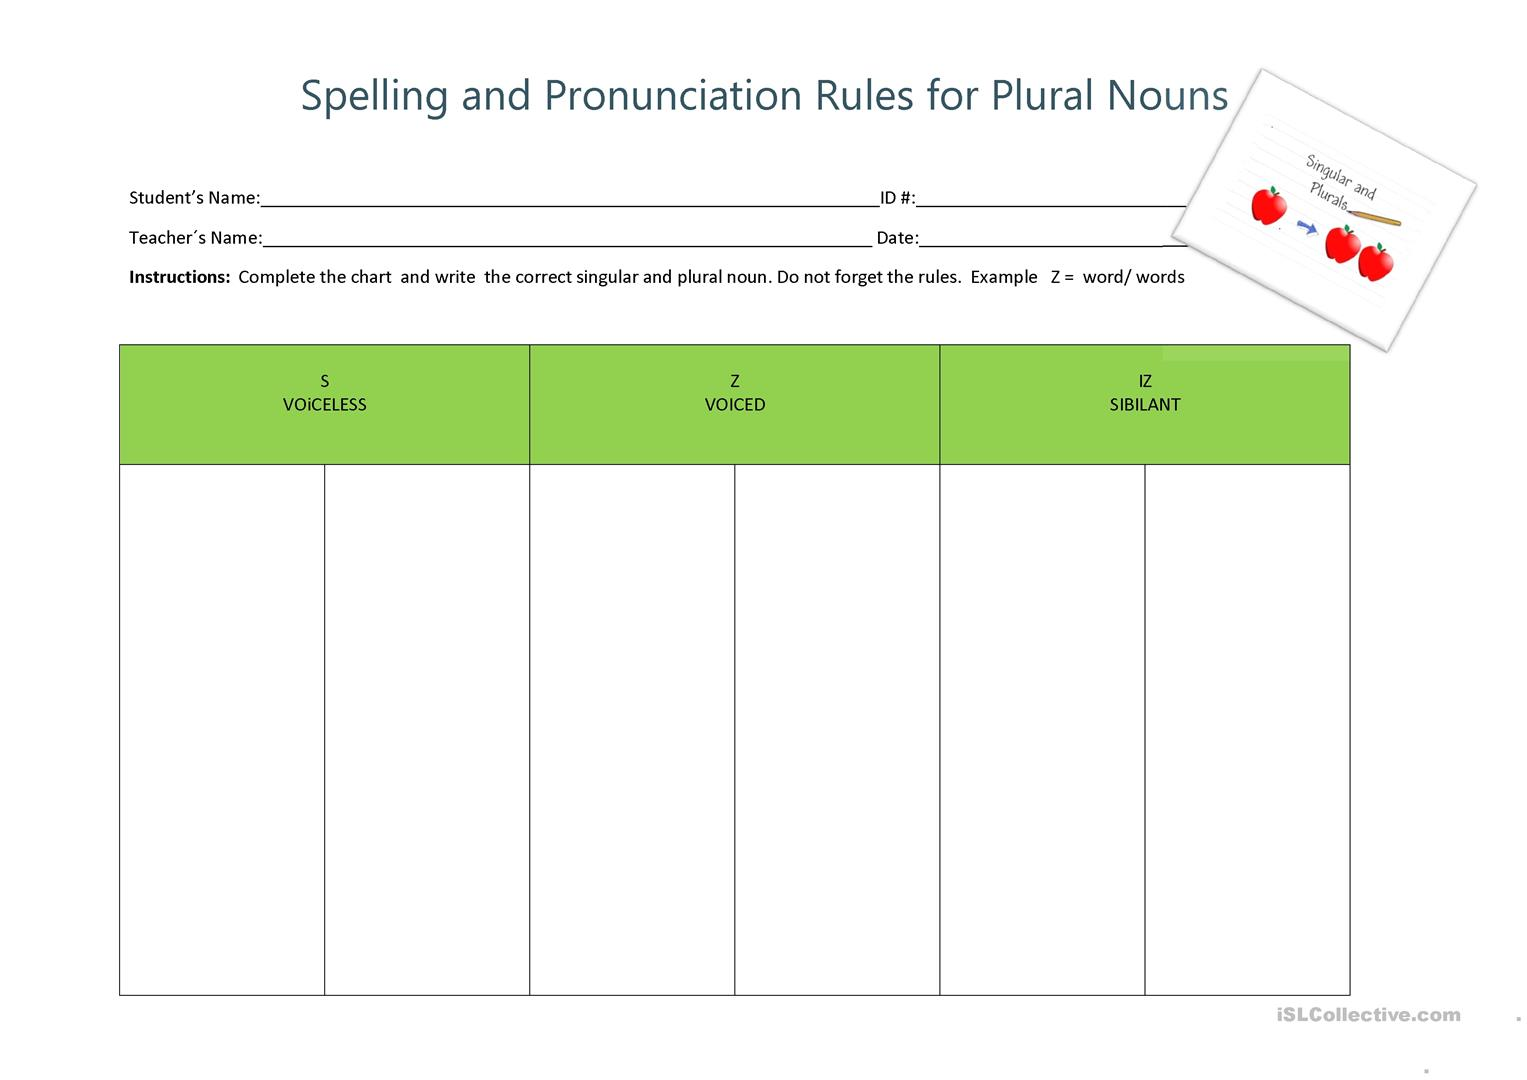 Spelling And Pronunciation Rules For Plural Nouns